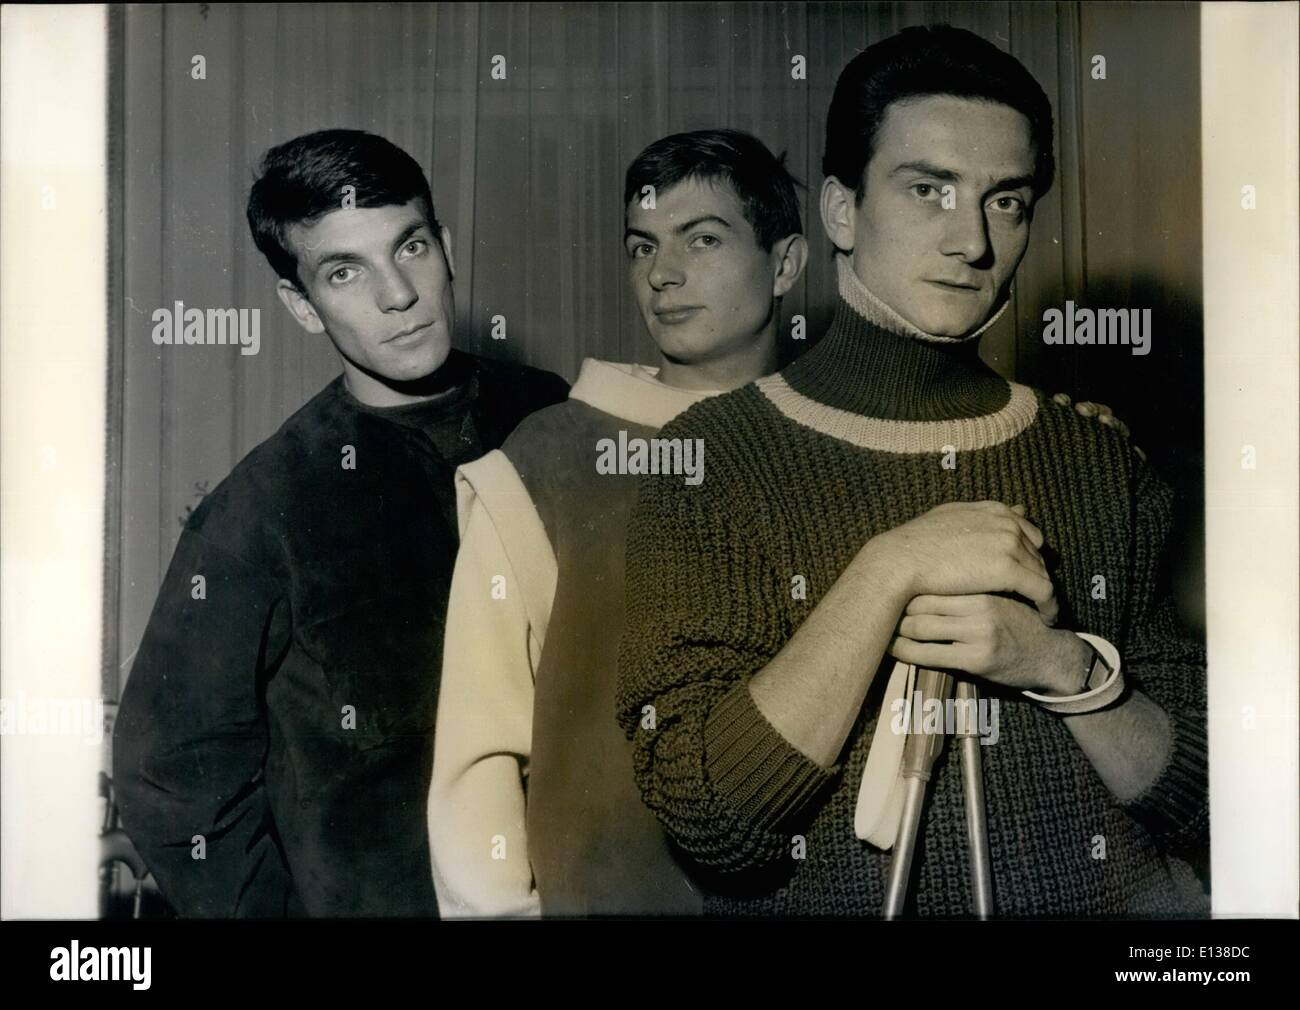 Feb. 29, 2012 - New look on the Masculine fashion: Parisian dressmaker, Pierre Cardiin presented today the new masculine fashion for Autumn and Winter 1960. Photo shows three models of skined and kintted pullovers for winter sports. - Stock Image